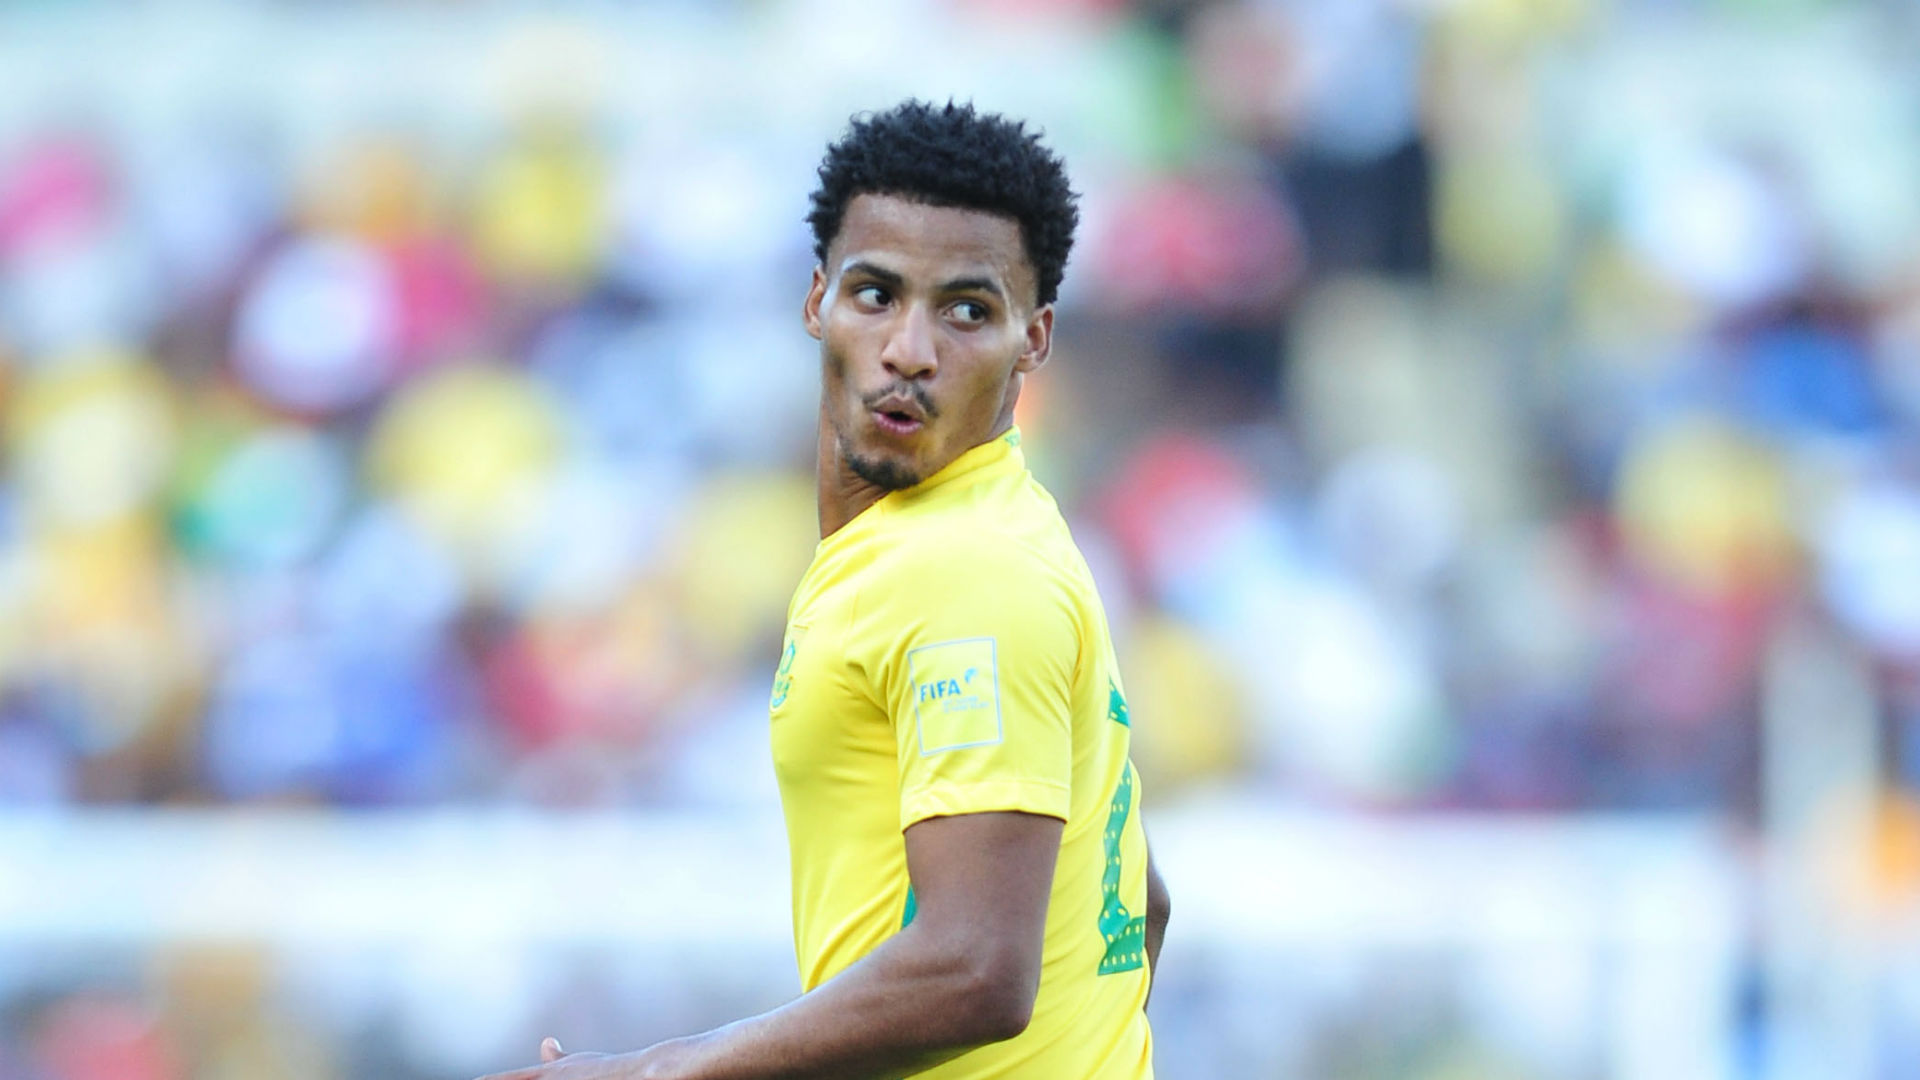 Coetzee To Celtic In The Next 48 Hours?